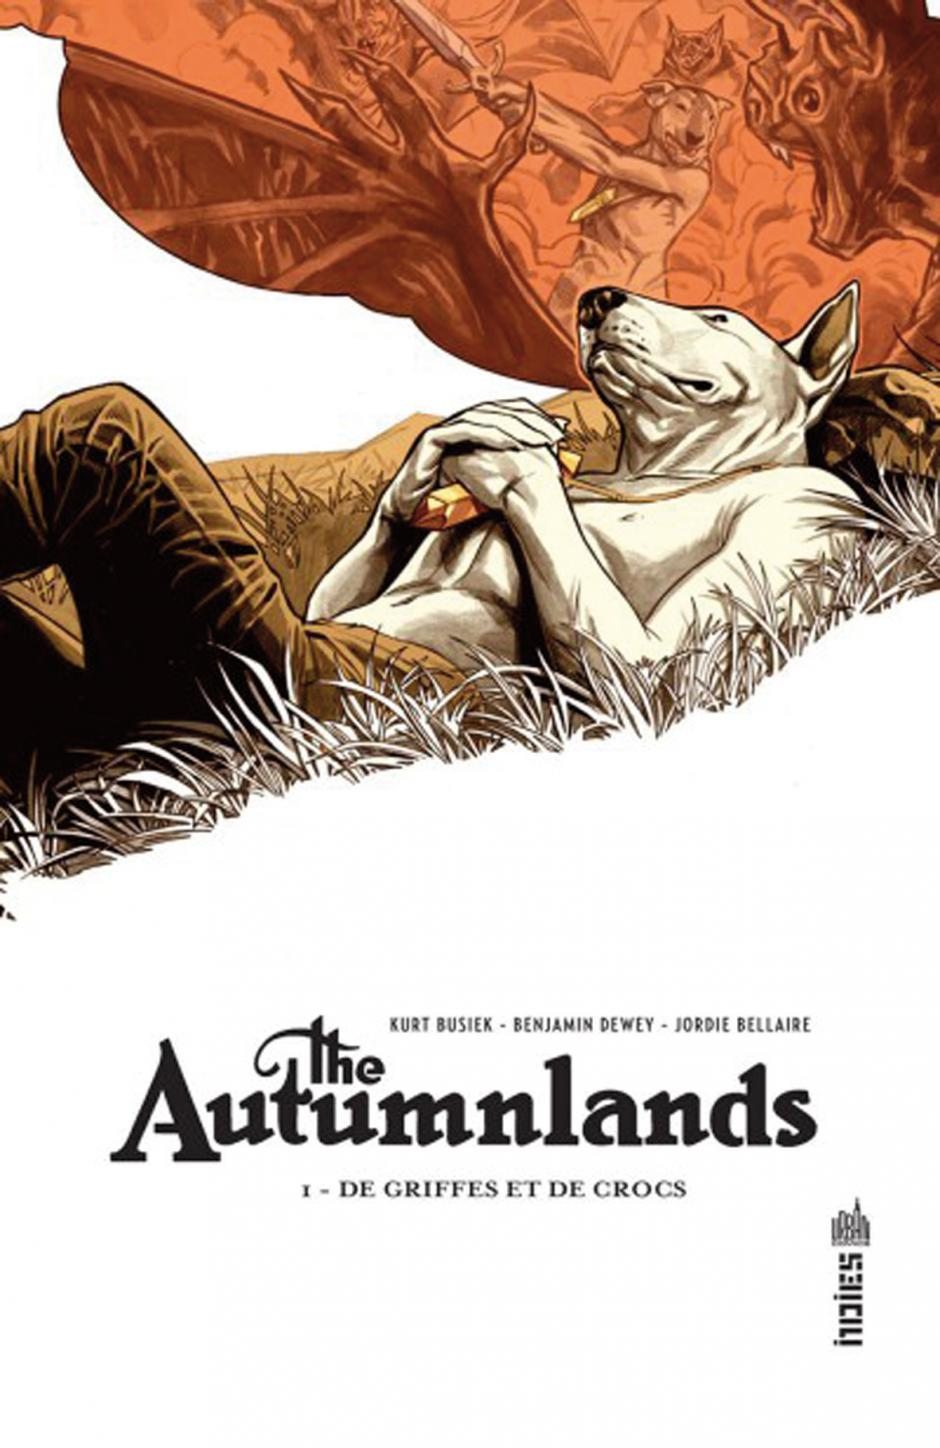 The Autumnlands, Kurt Busiek, Benjamin Dewey, Jordie Bellaire